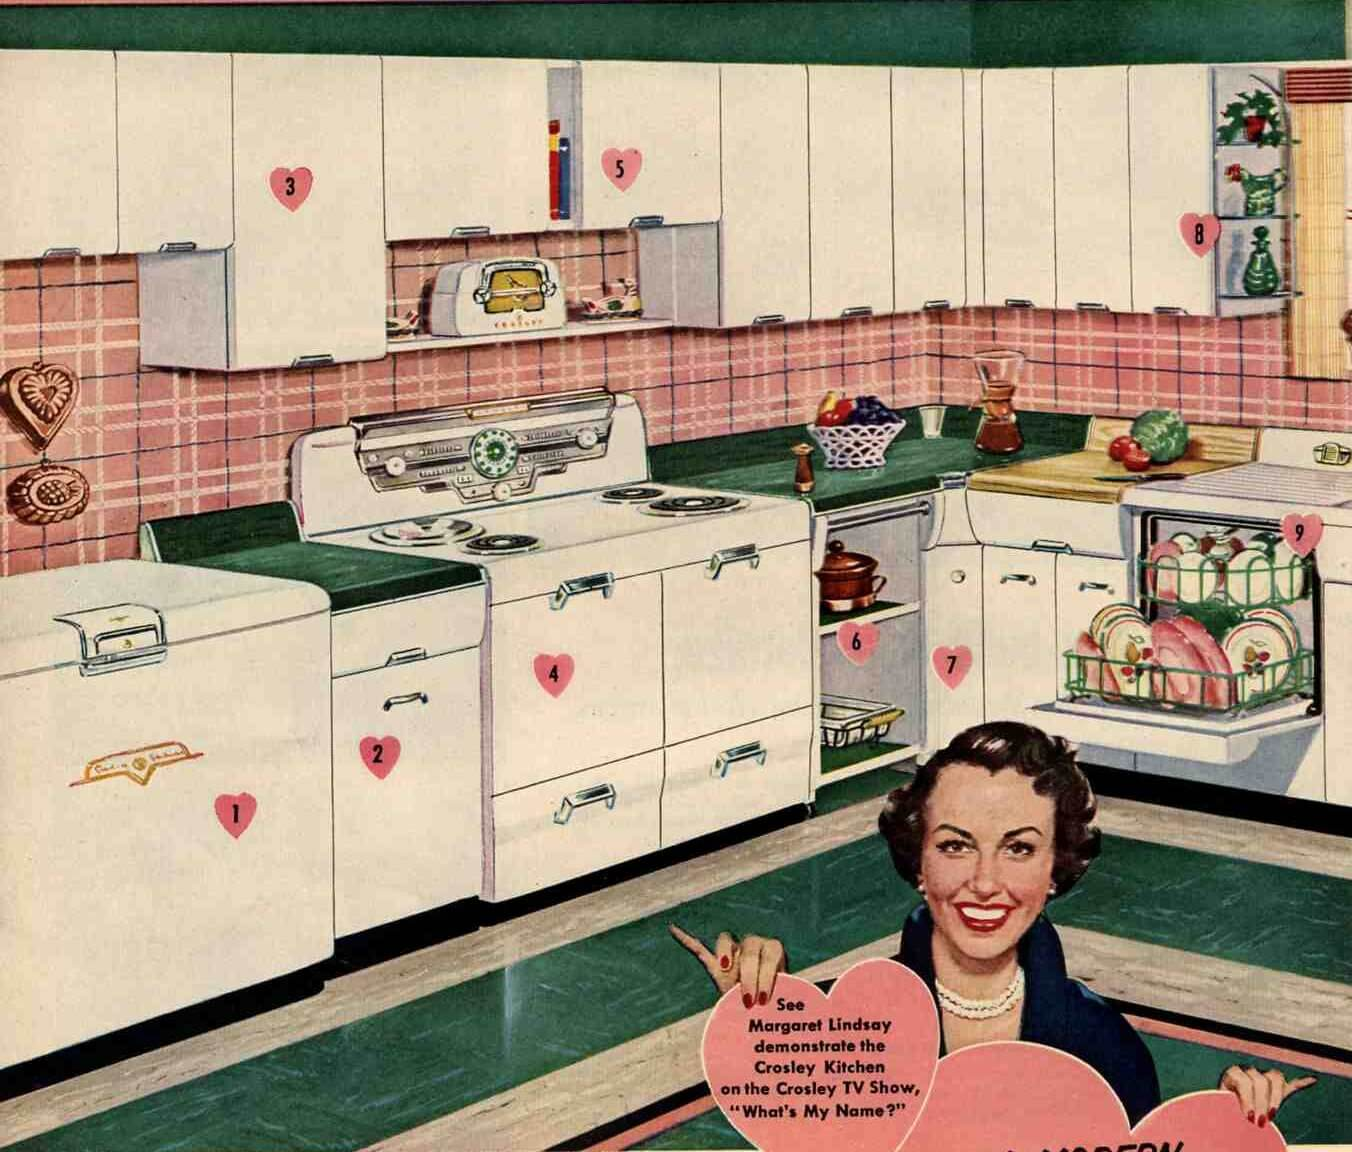 1955 kitchen appliances, 1955 kitchen trim, refinishing oak cabinets, 1955 kitchen tiles, 1955 kitchen antiques, 1955 kitchen makeover, 1955 kitchen wallpaper, 1955 kitchen tables, 1955 kitchen stoves, on 1955 kitchen cabinet ideas